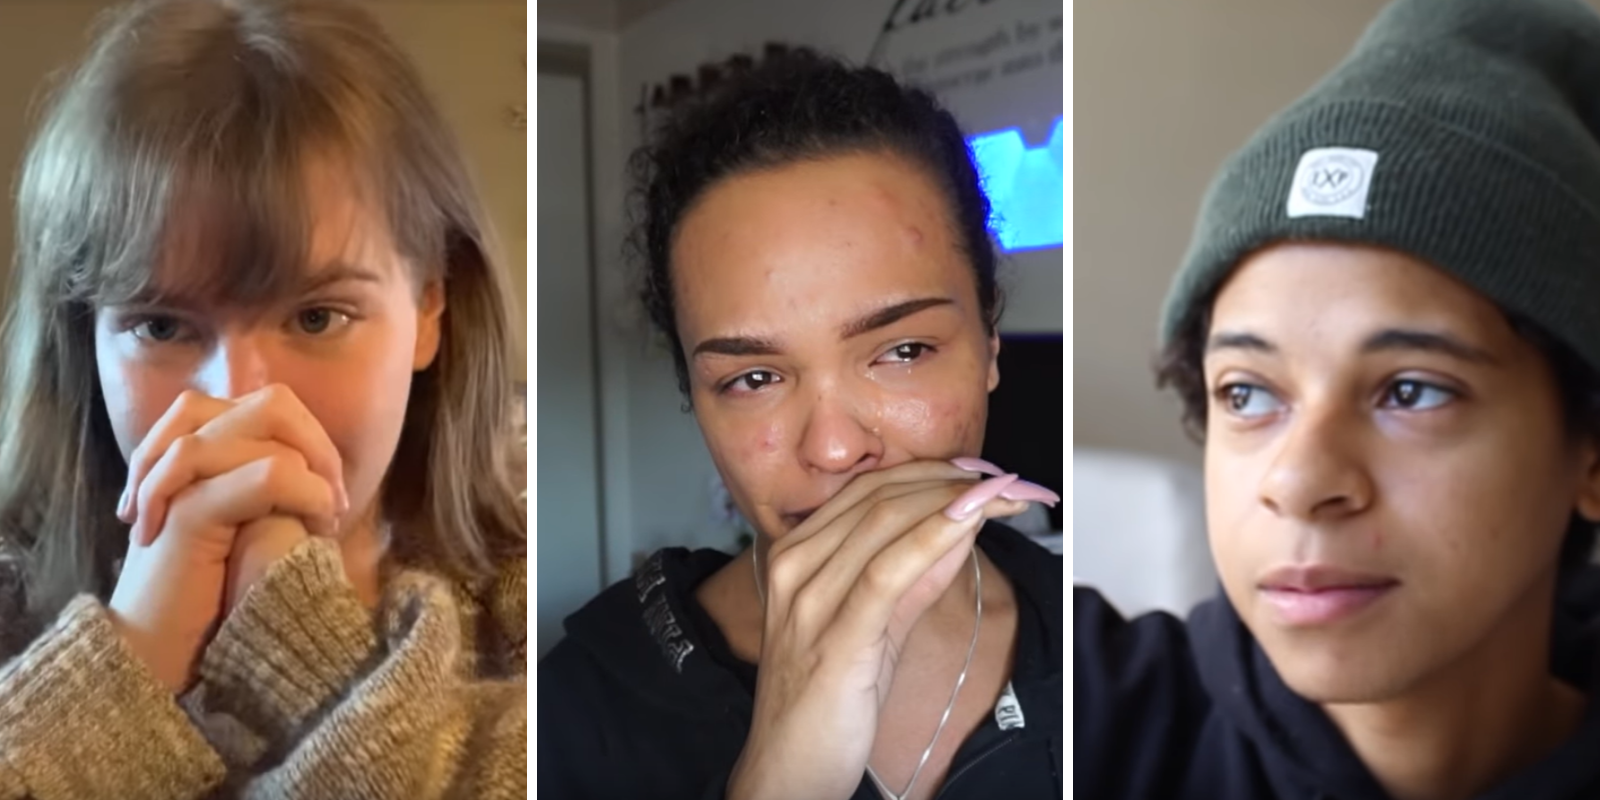 Teen detransitioners are telling their stories on YouTube